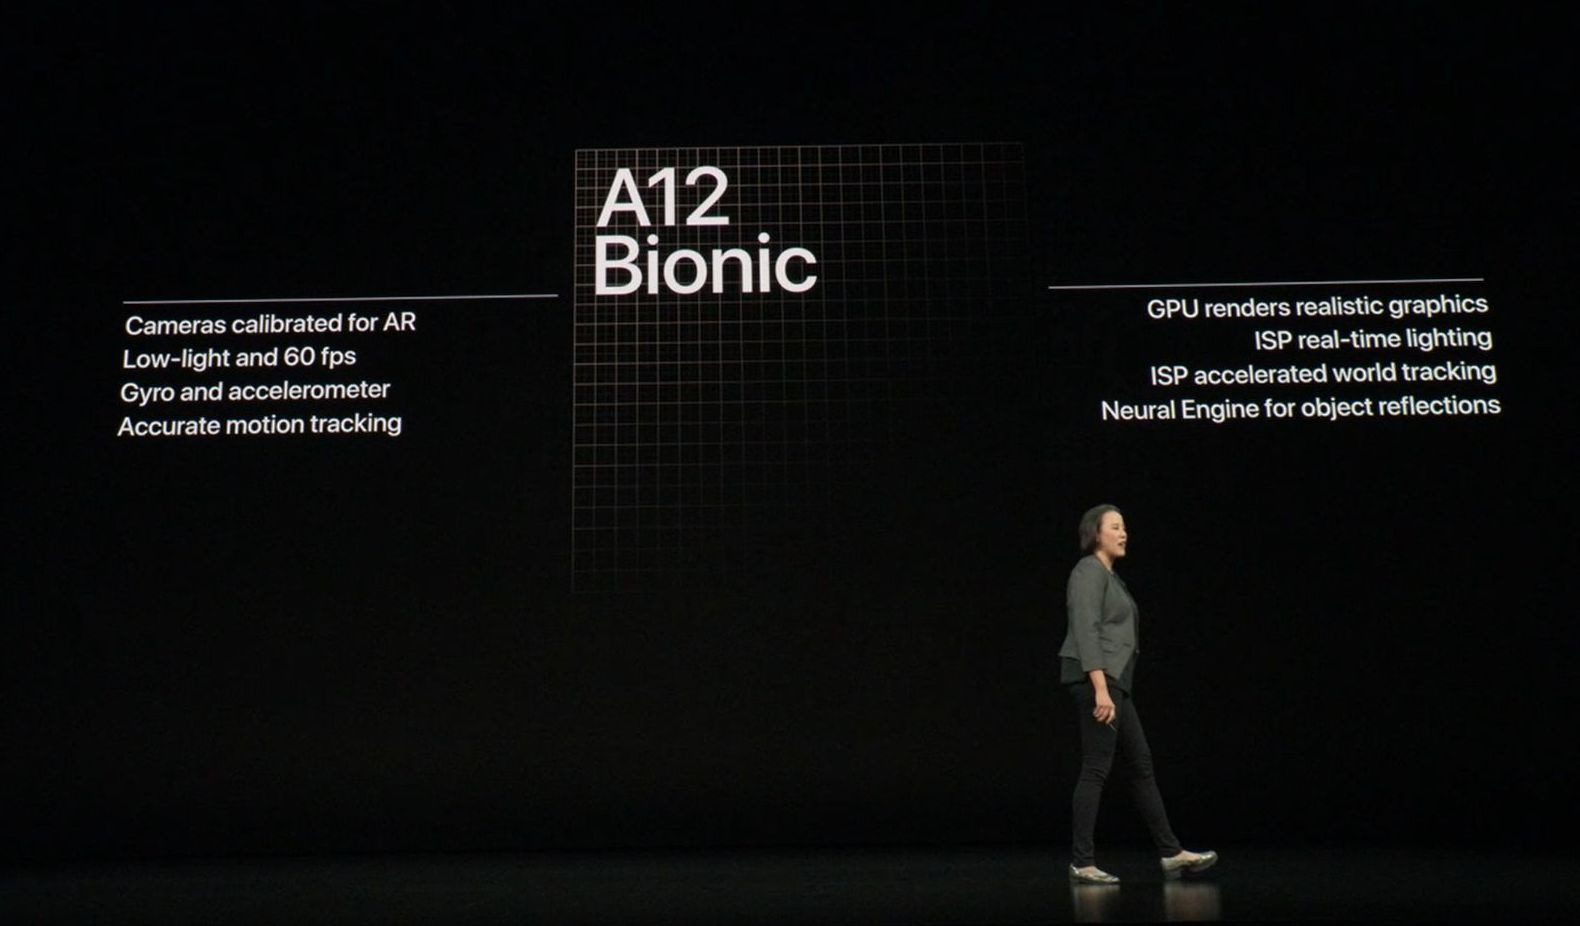 Apple usually has great names for stuff and comes up with a not even Full HD screen and calls it Retina but Bionic is not cool not in 2017/2018